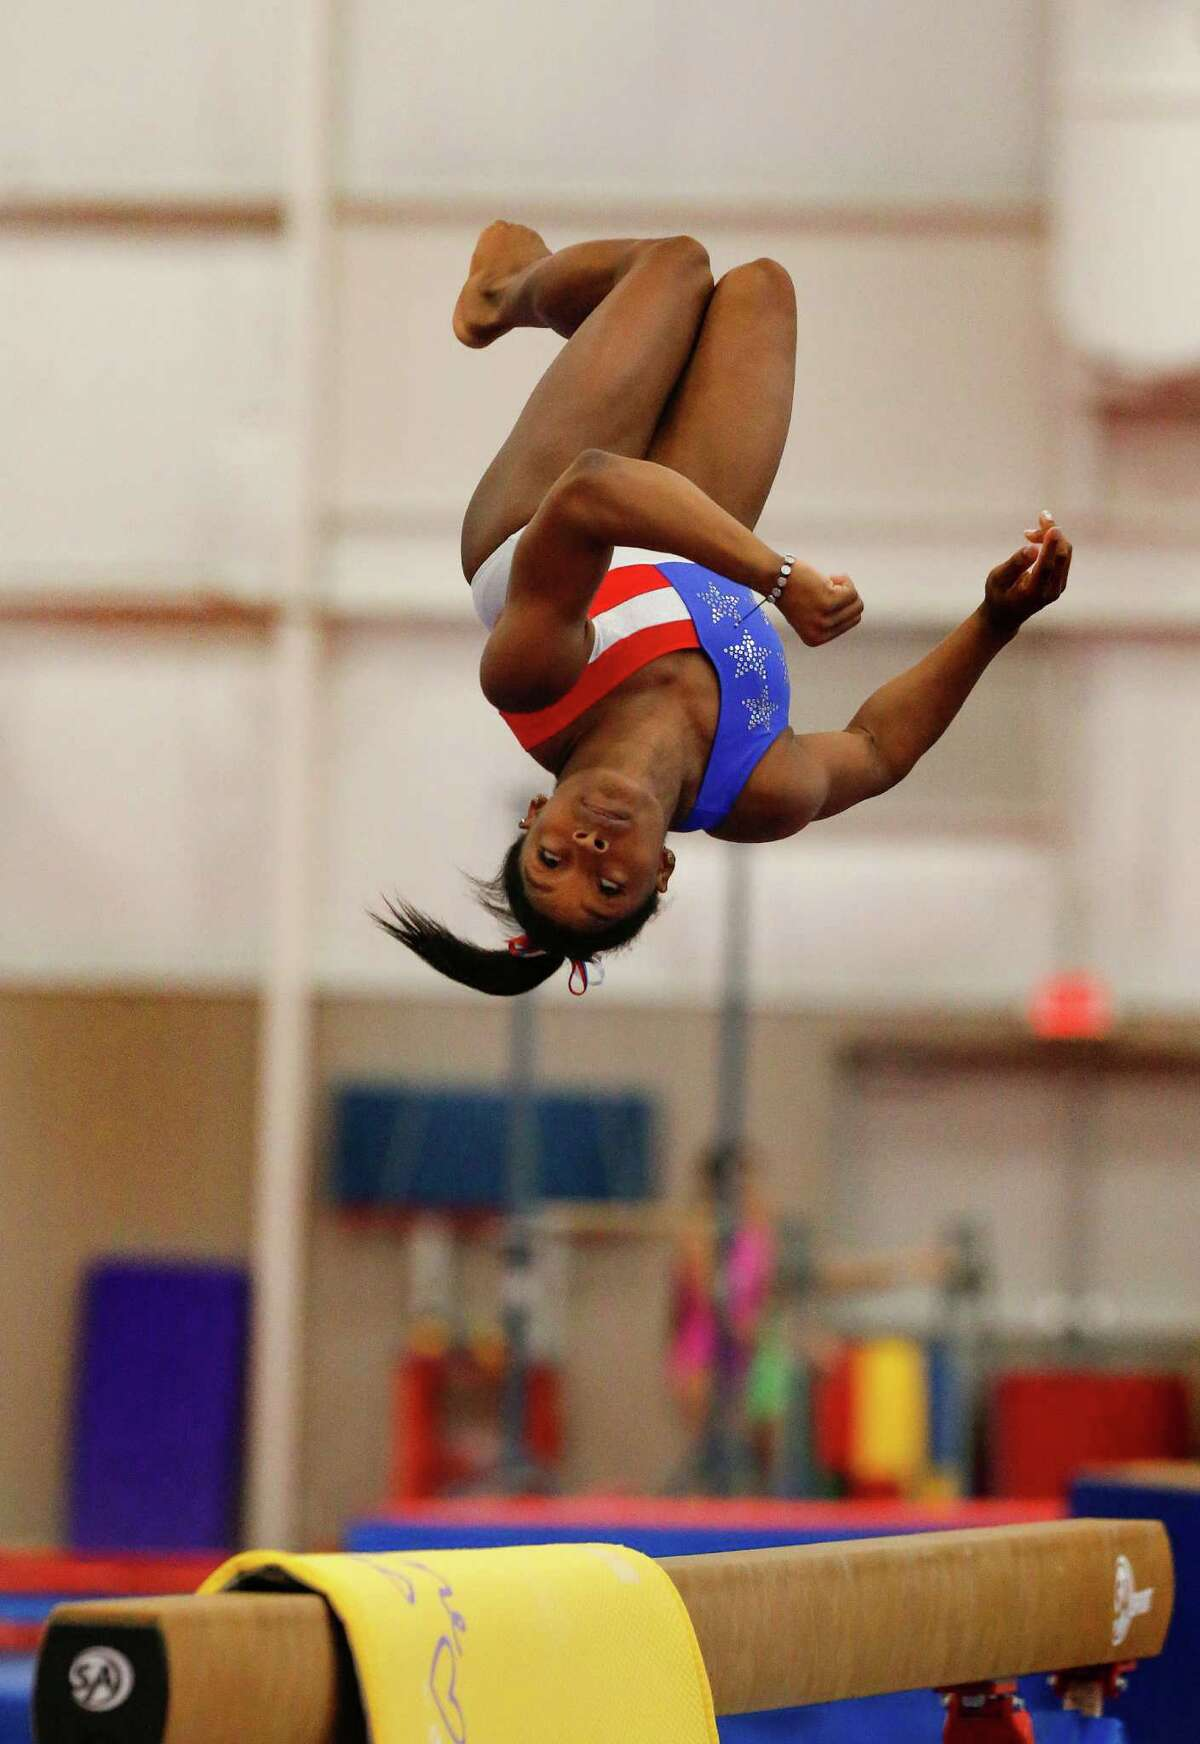 Coach Aimee Boorman says Olympic gymnast Simone Biles has an athlete's finely tuned brain/body connection.